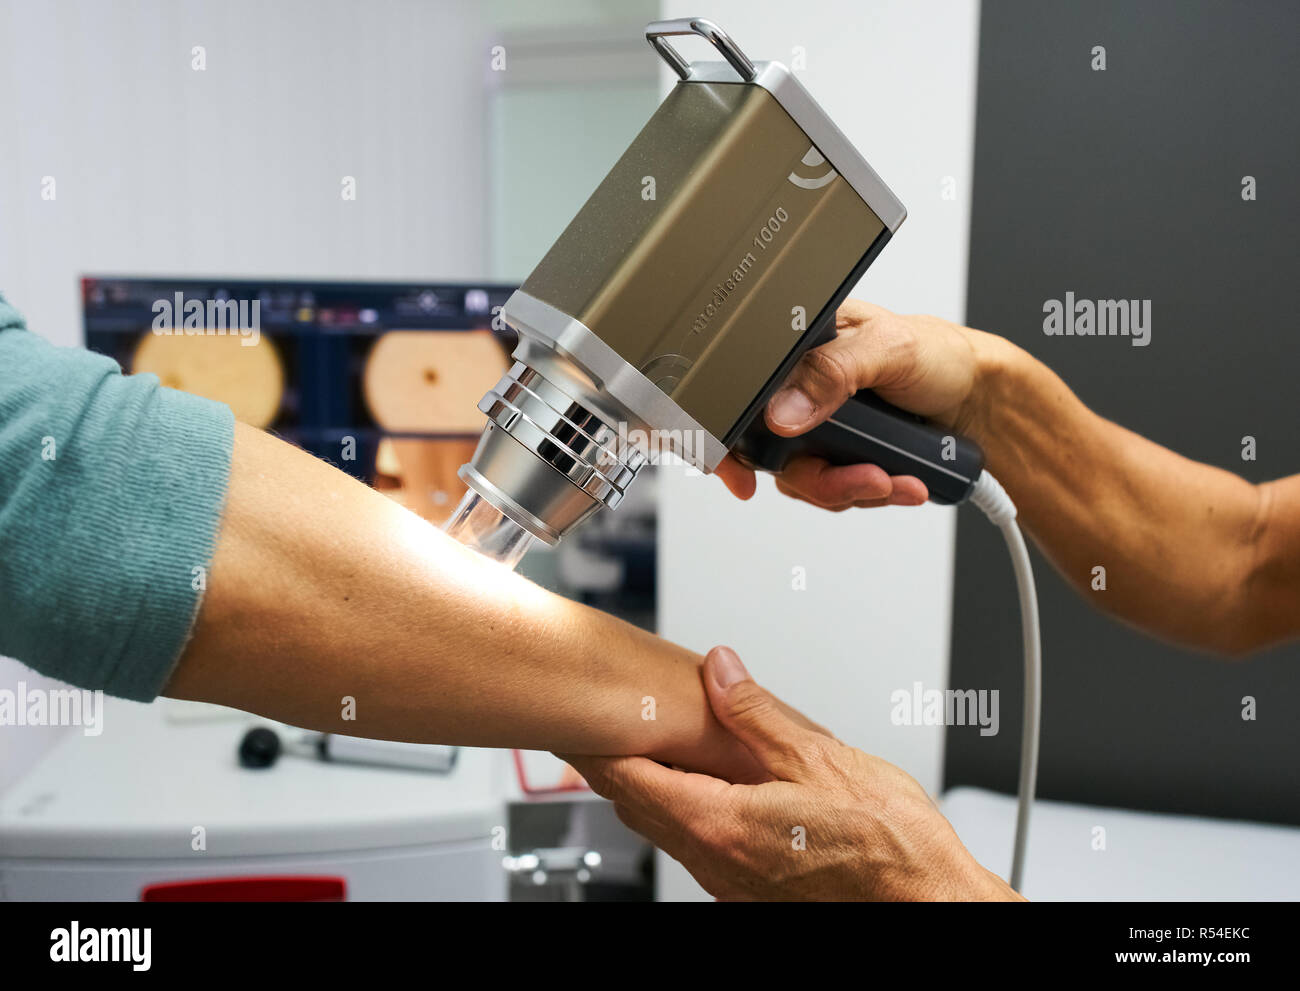 A skin doctor is doing a skin cancer screening with a Dermoscope Medicam 1000 at the arm of a patient with a modern FotoFinder system in Munich, Novem - Stock Image